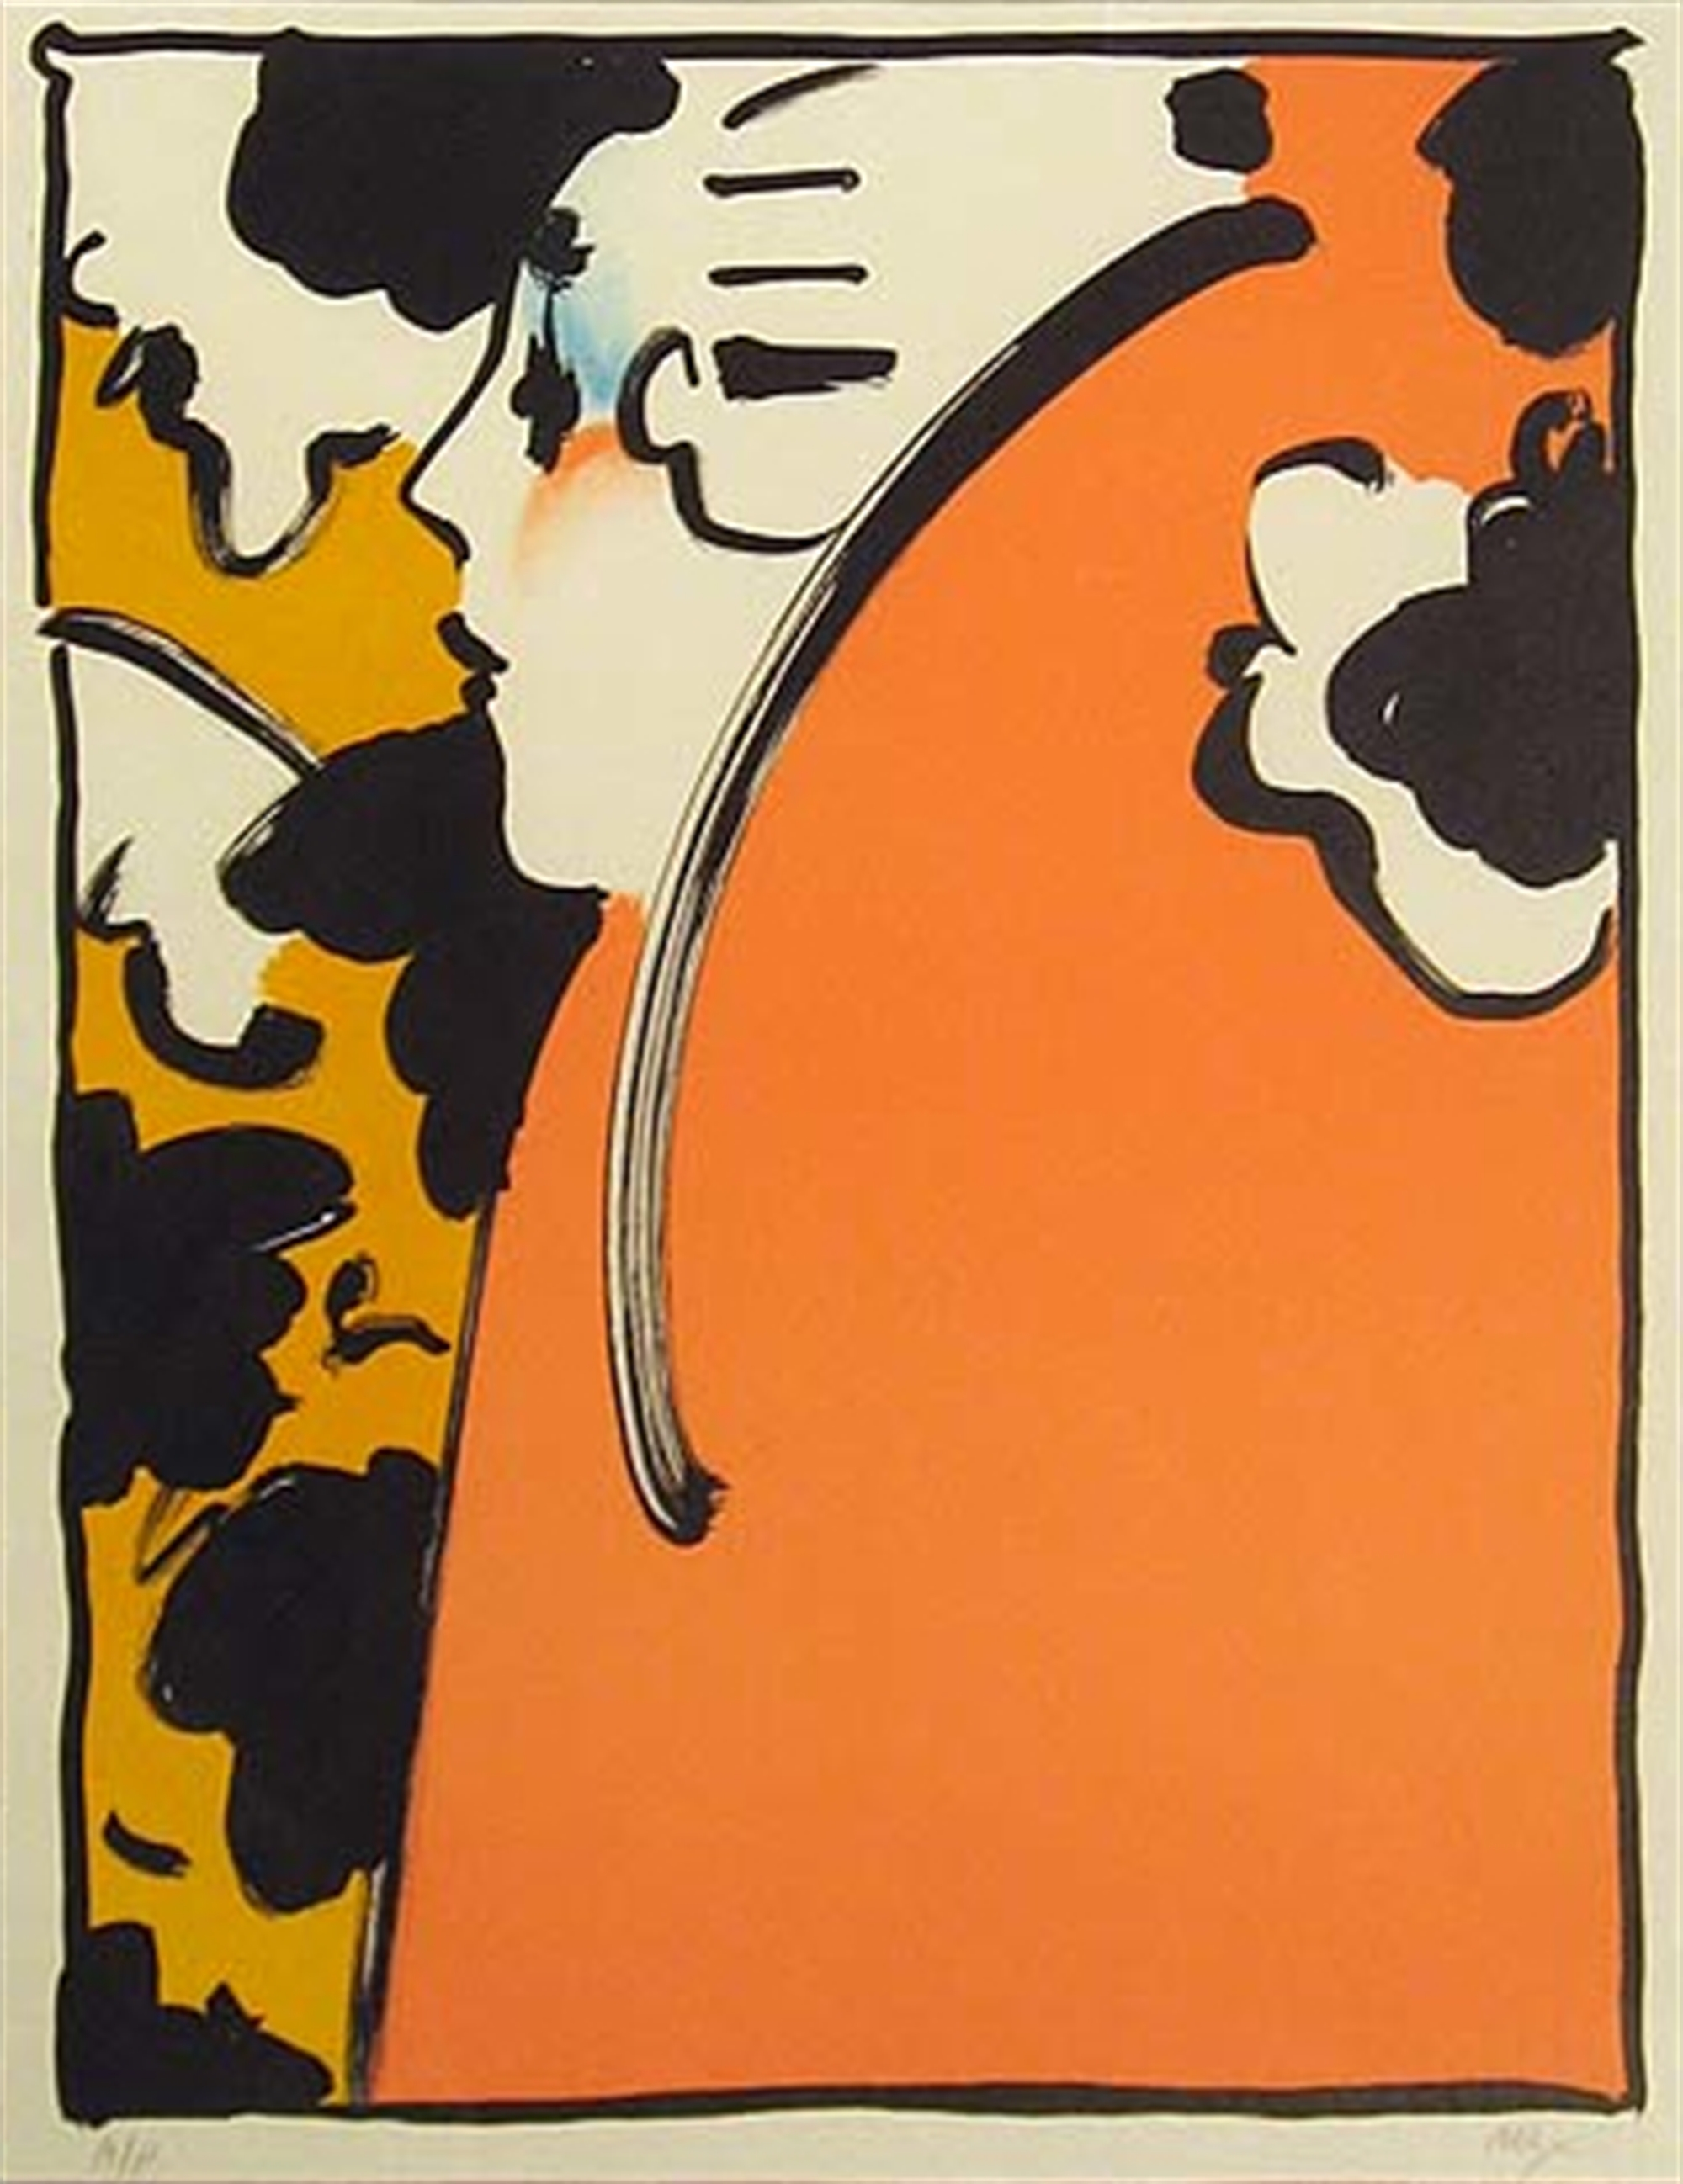 Peach Lady by Peter Max